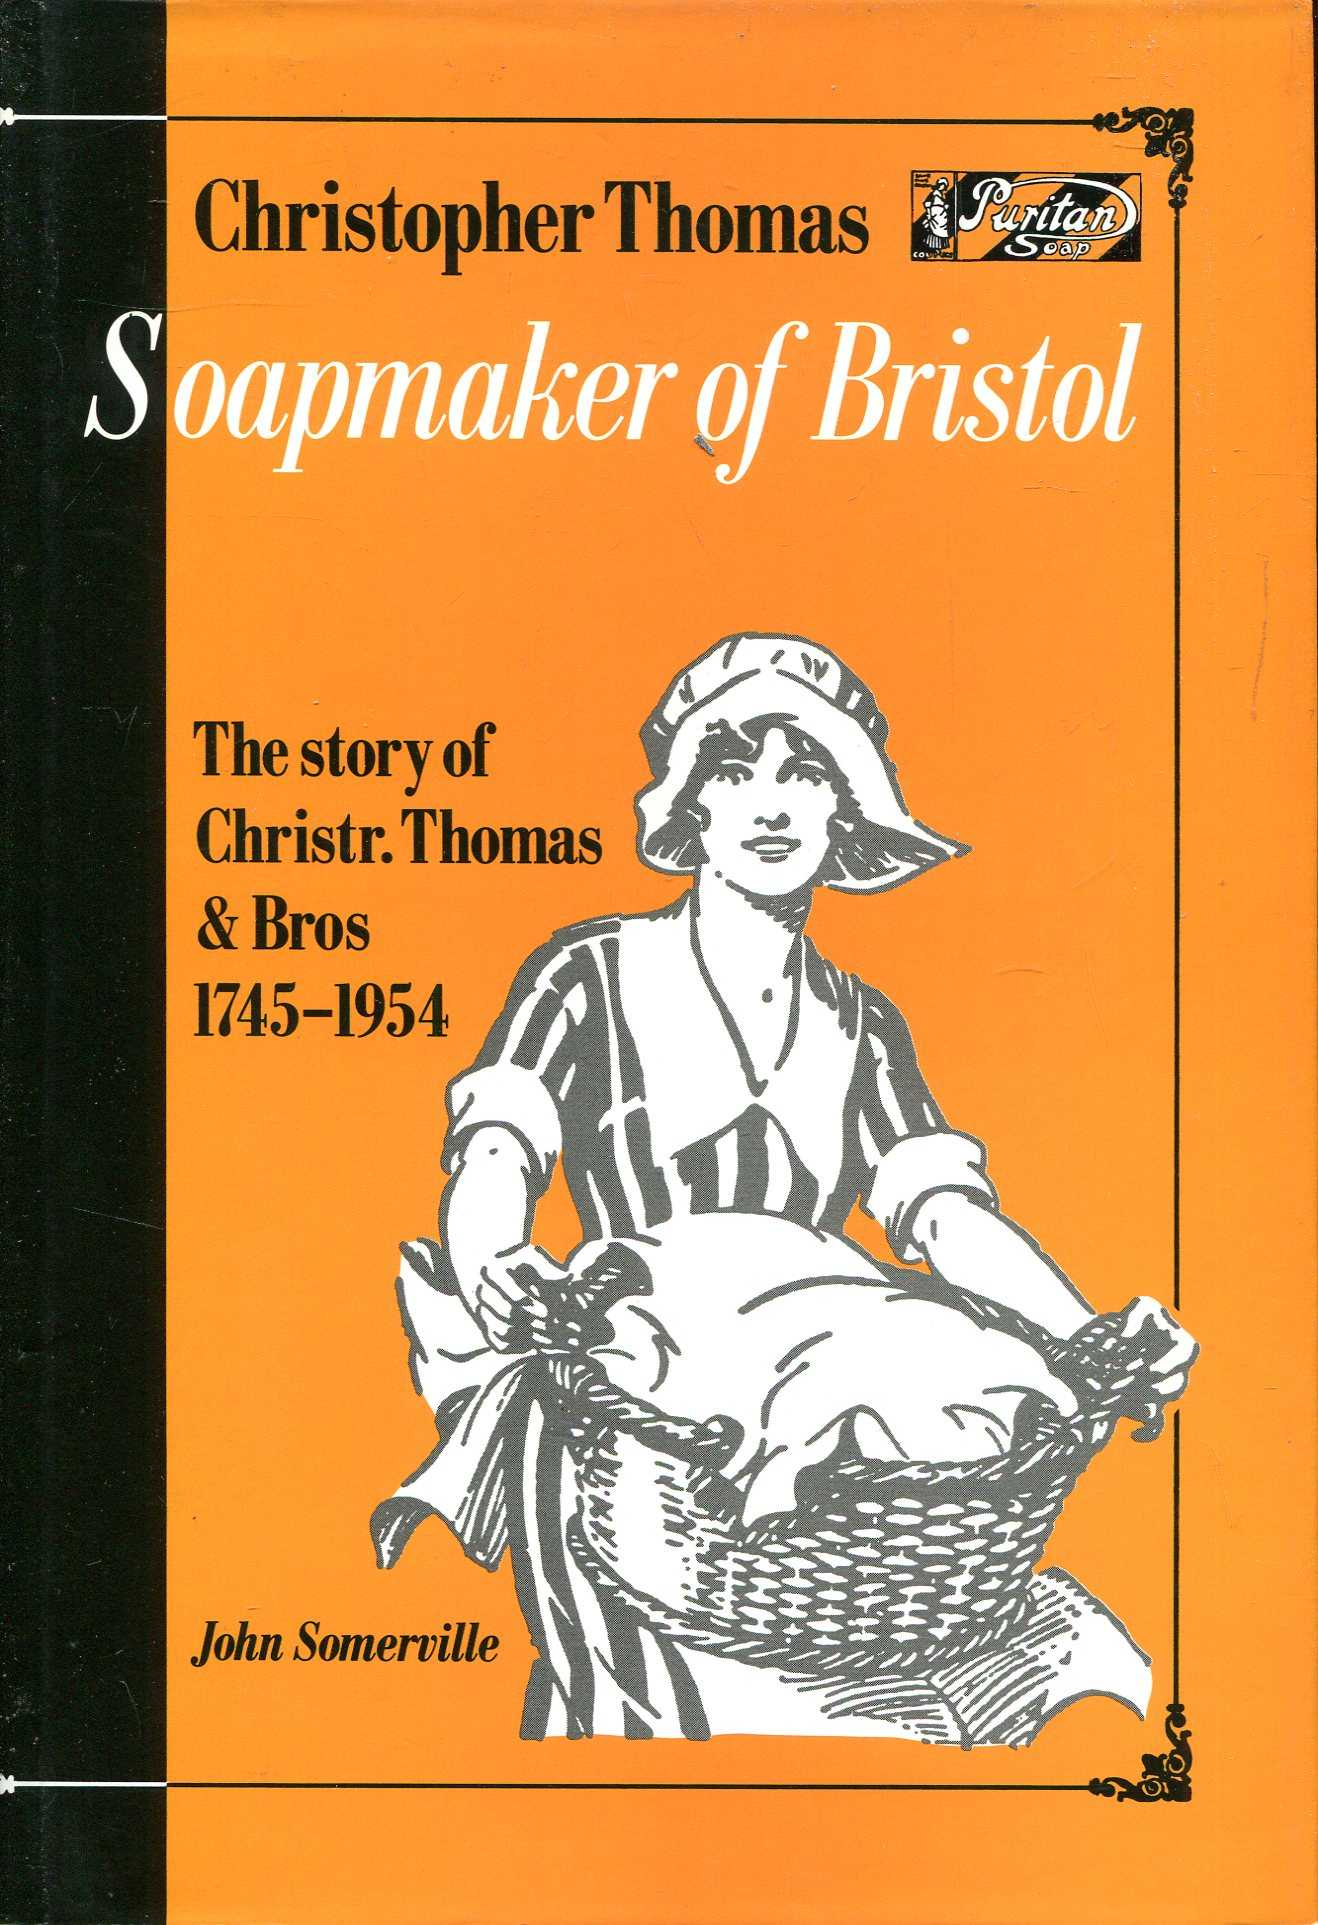 Image for Christopher Thomas, Soapmaker of Bristol: The story of Christr. Thomas & Bros., 1745-1954